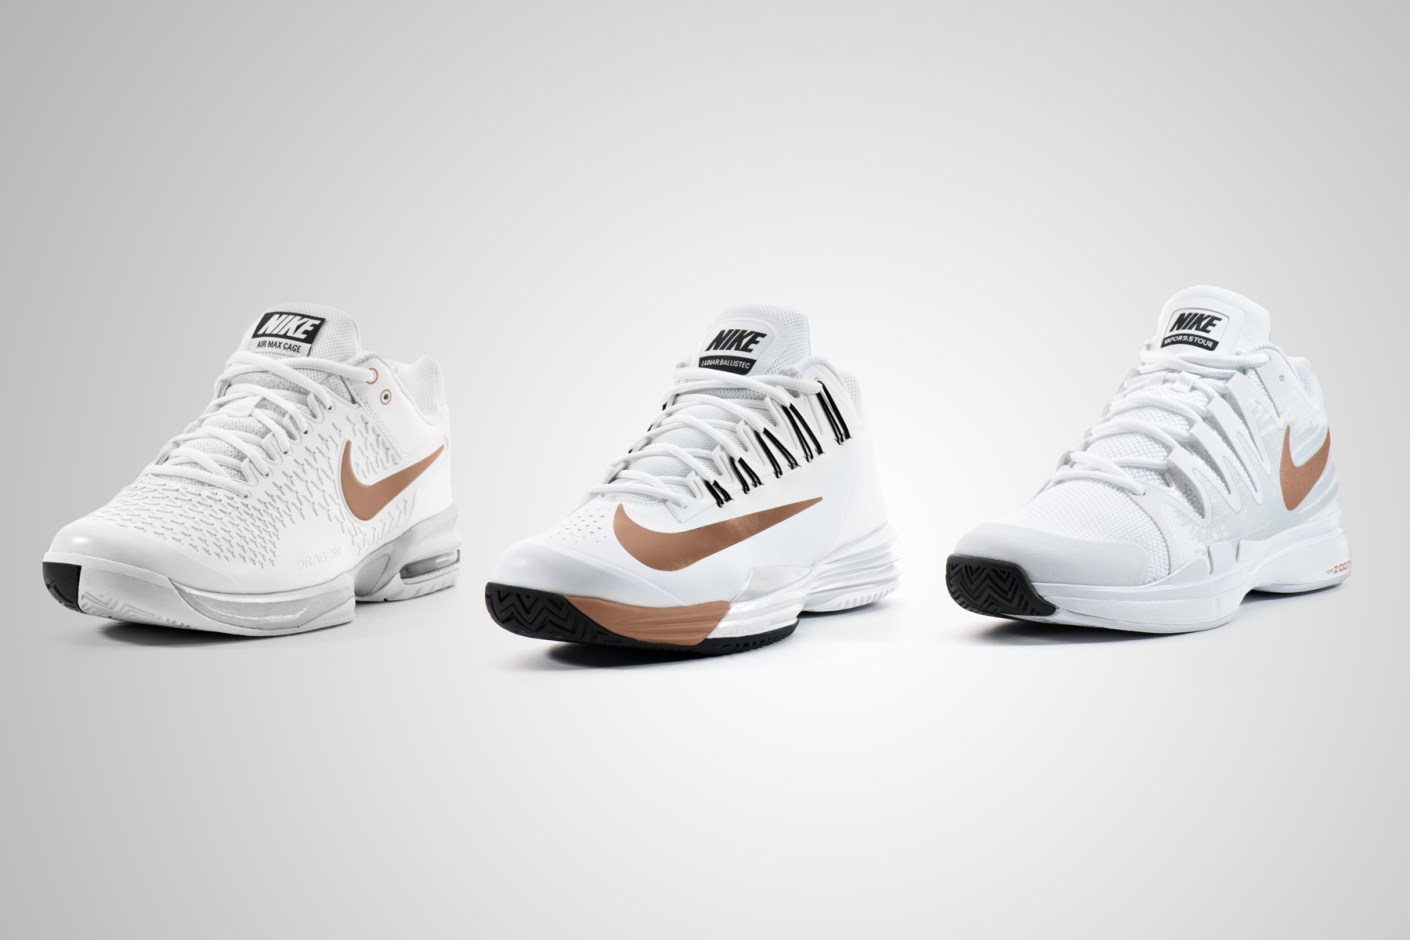 Image of Nike Tennis 2014 Wimbledon Footwear Collection